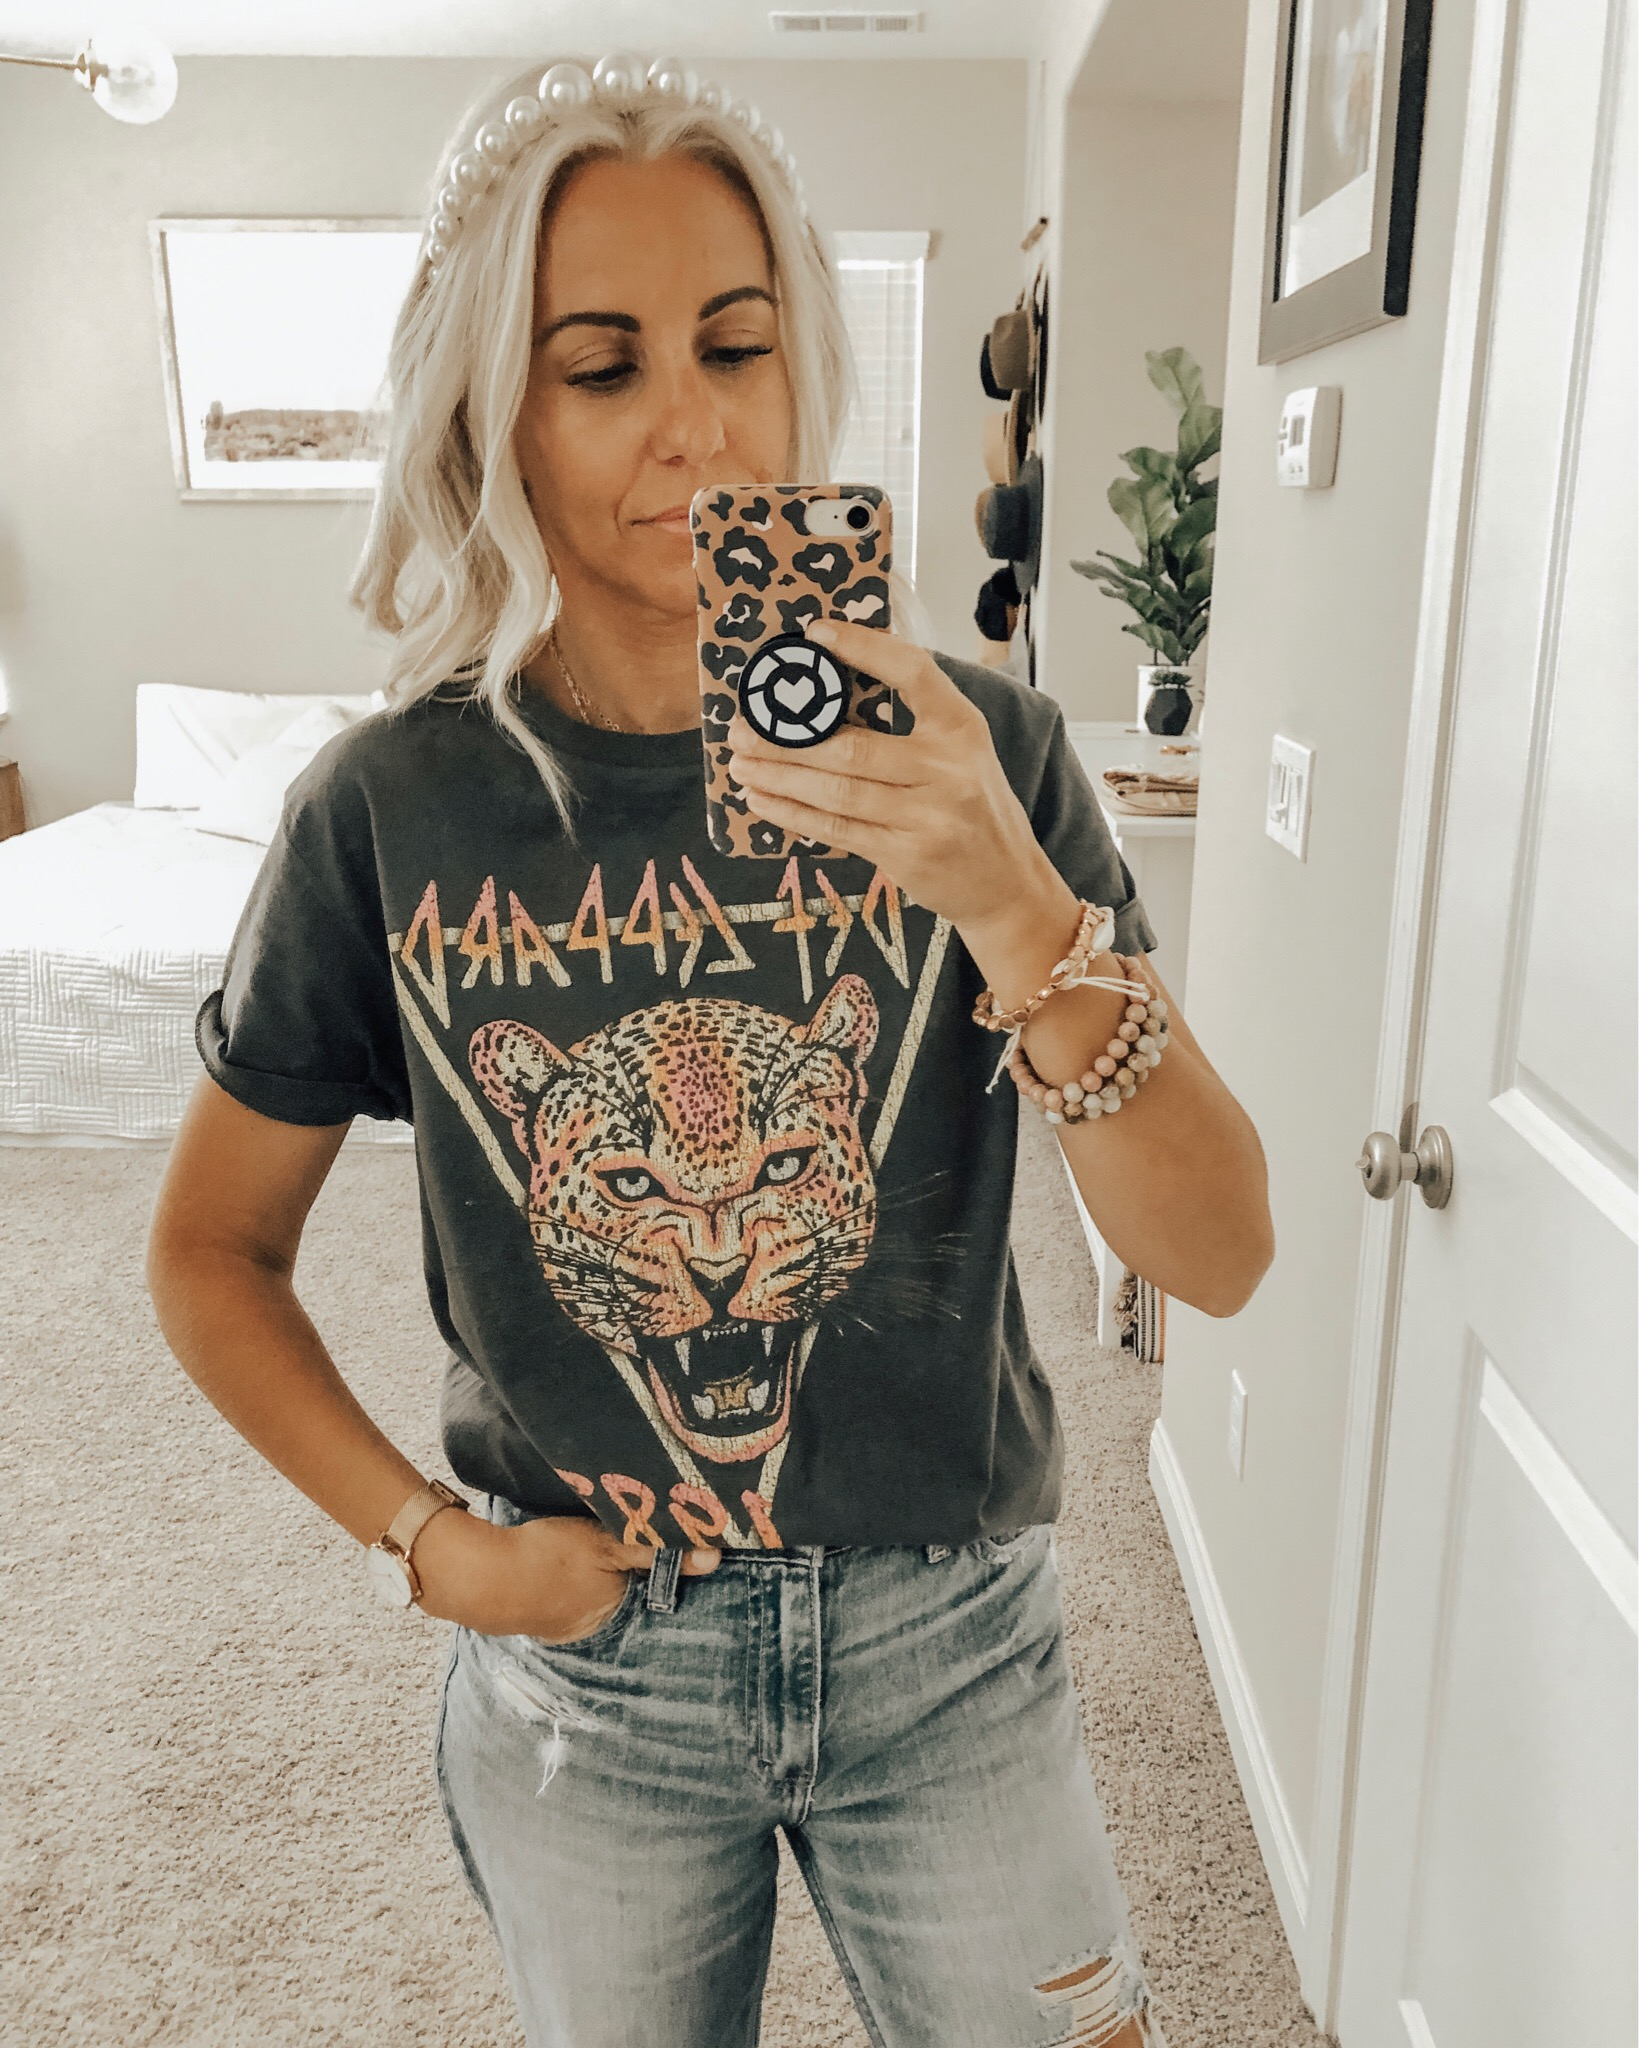 TOP 10 OF 2019- Jaclyn De Leon Style +Sharing the top selling items from 2019 including several Amazon finds, my favorite shoes, jewelry, graphic tees and of course my must have mom jeans.